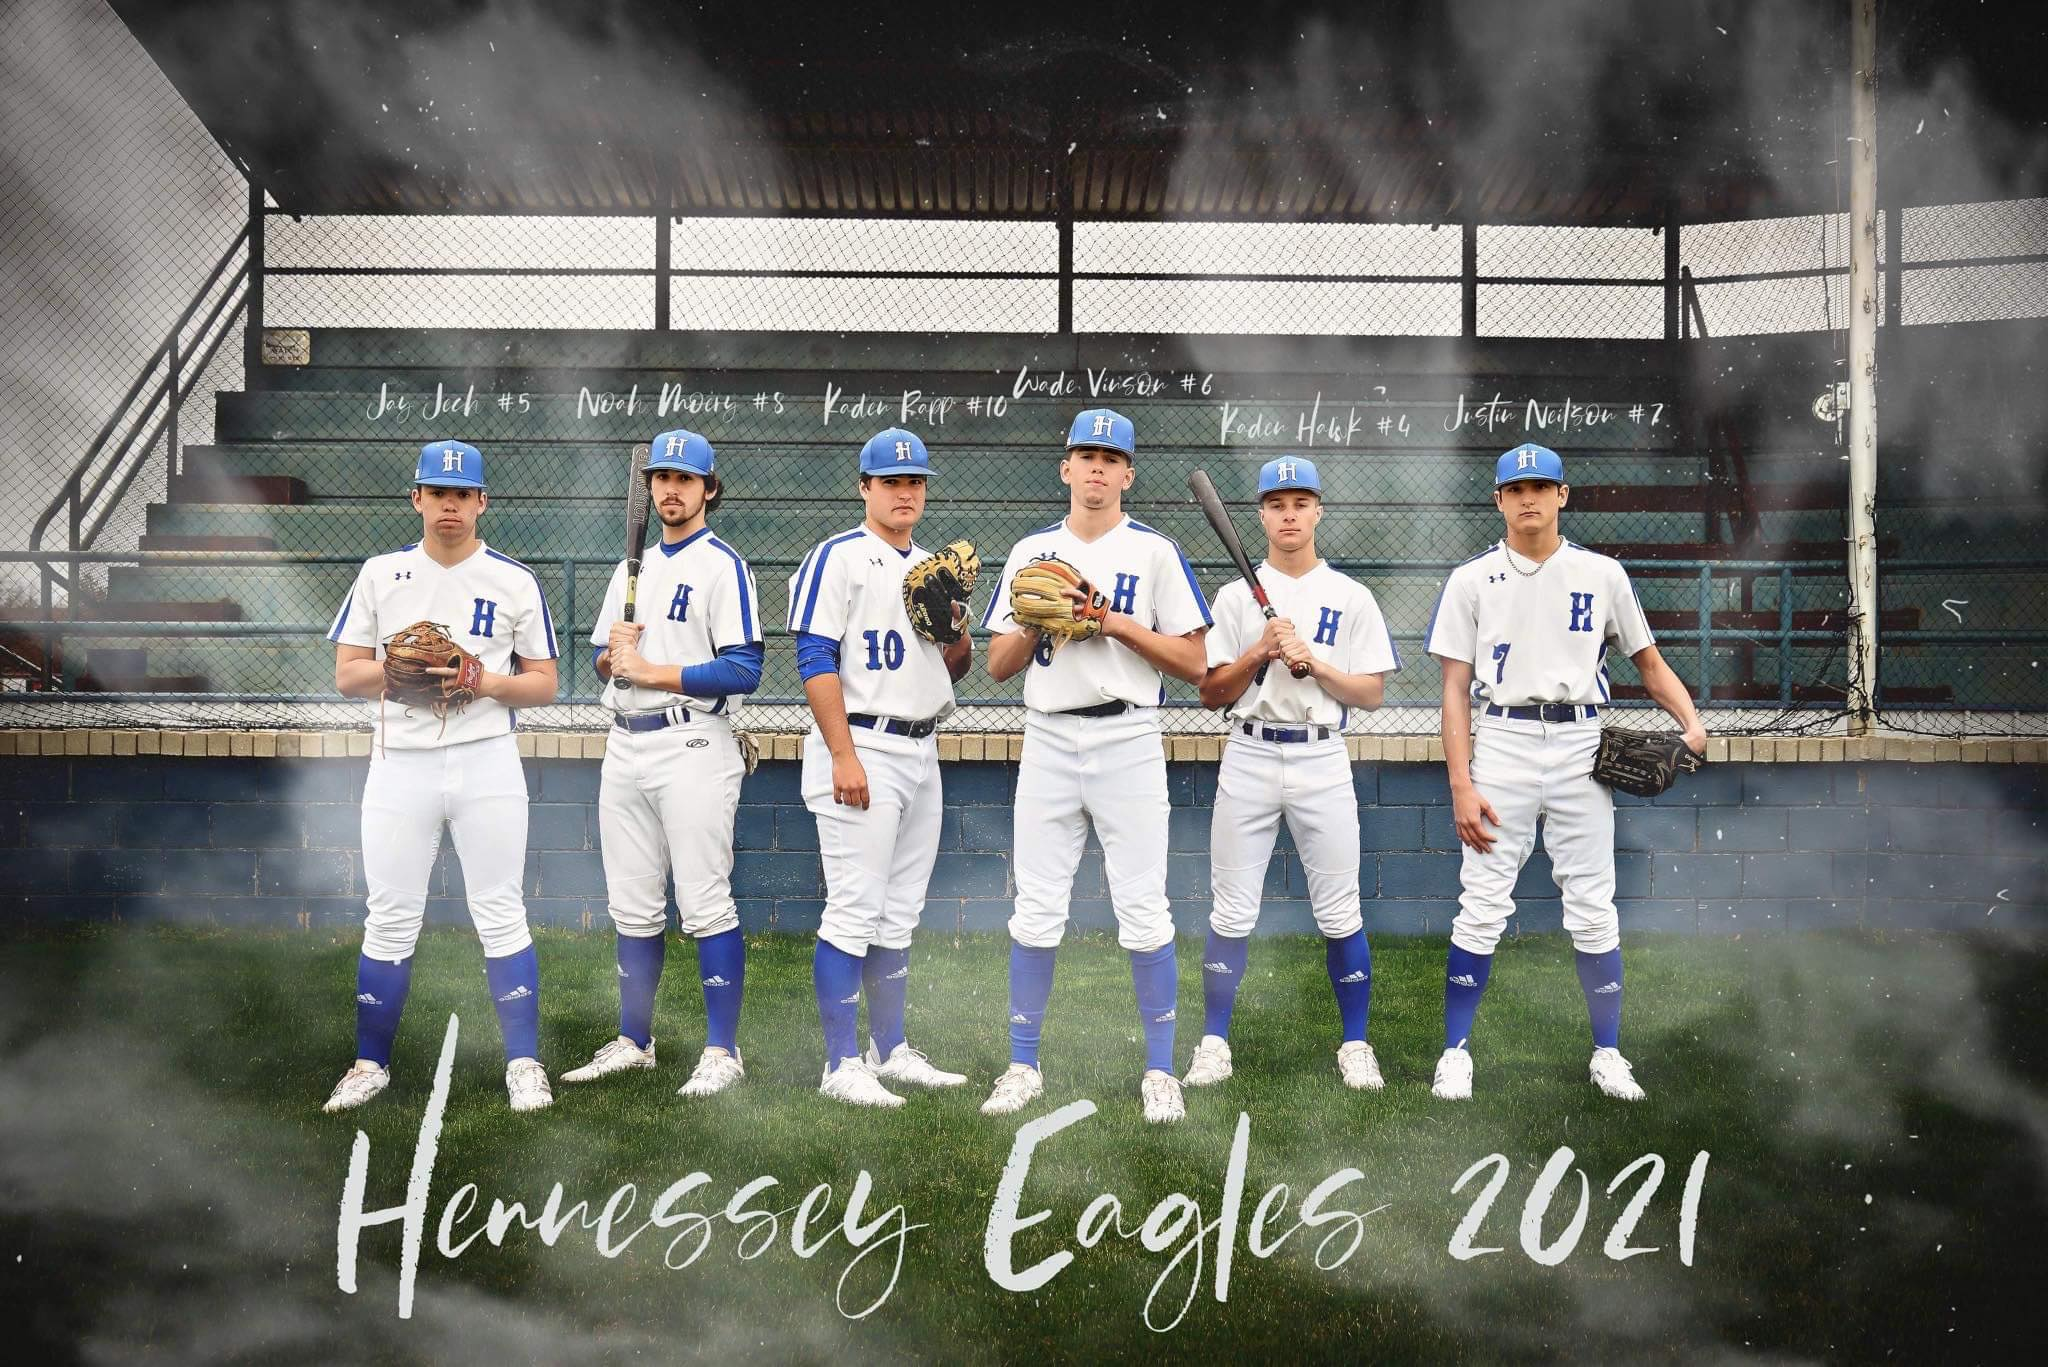 EAGLE BASEBALL SENIORS 2021